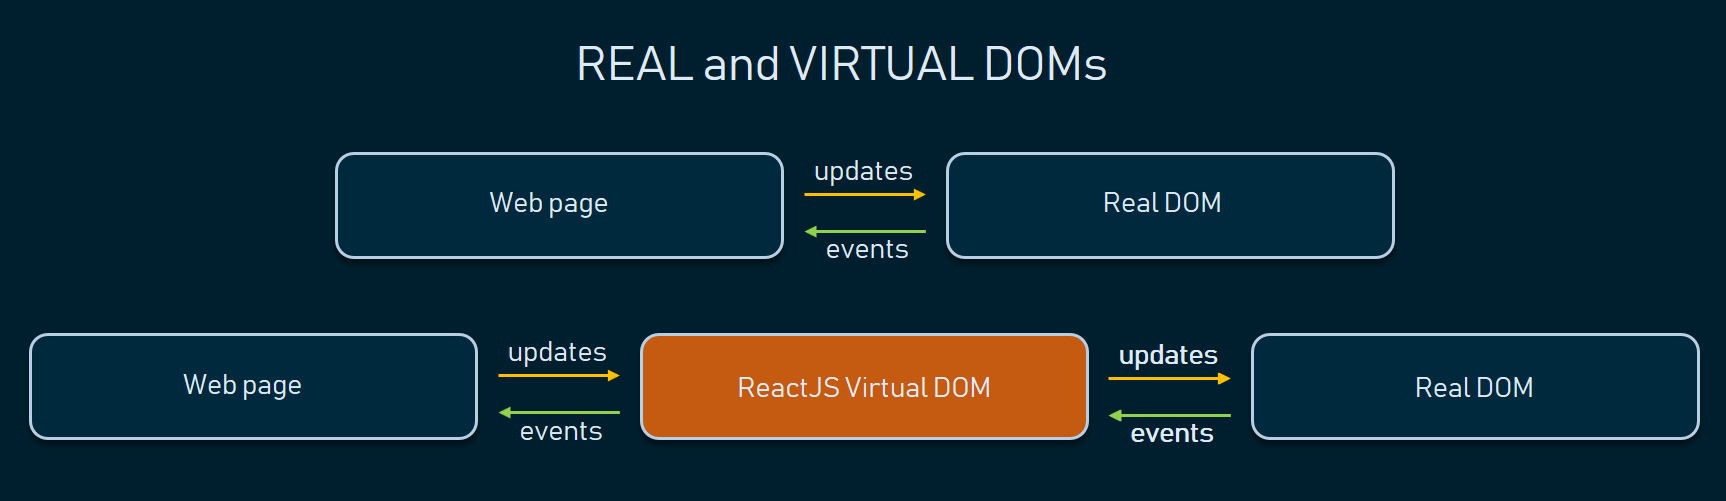 real and virtual DOM in ReactJS